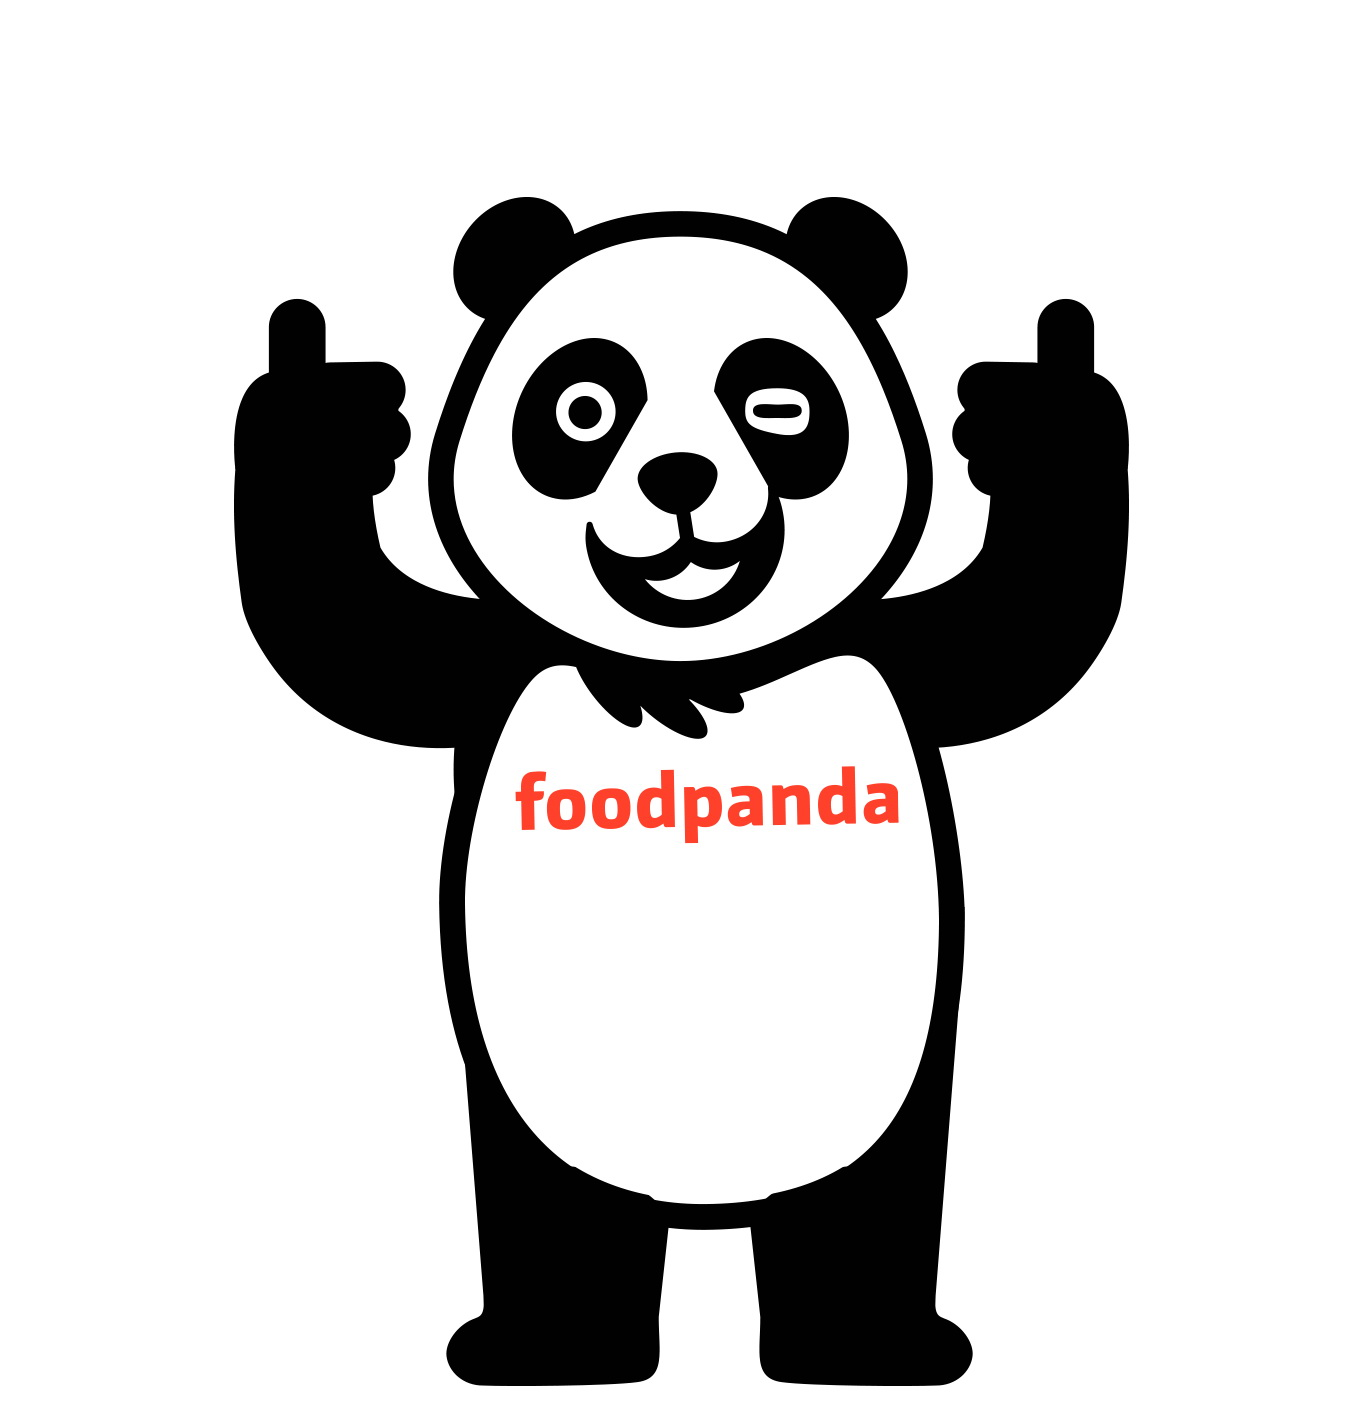 https://marketing.foodpanda.co.th/images/nl/foodpandacares/THUMBS_UP.jpg